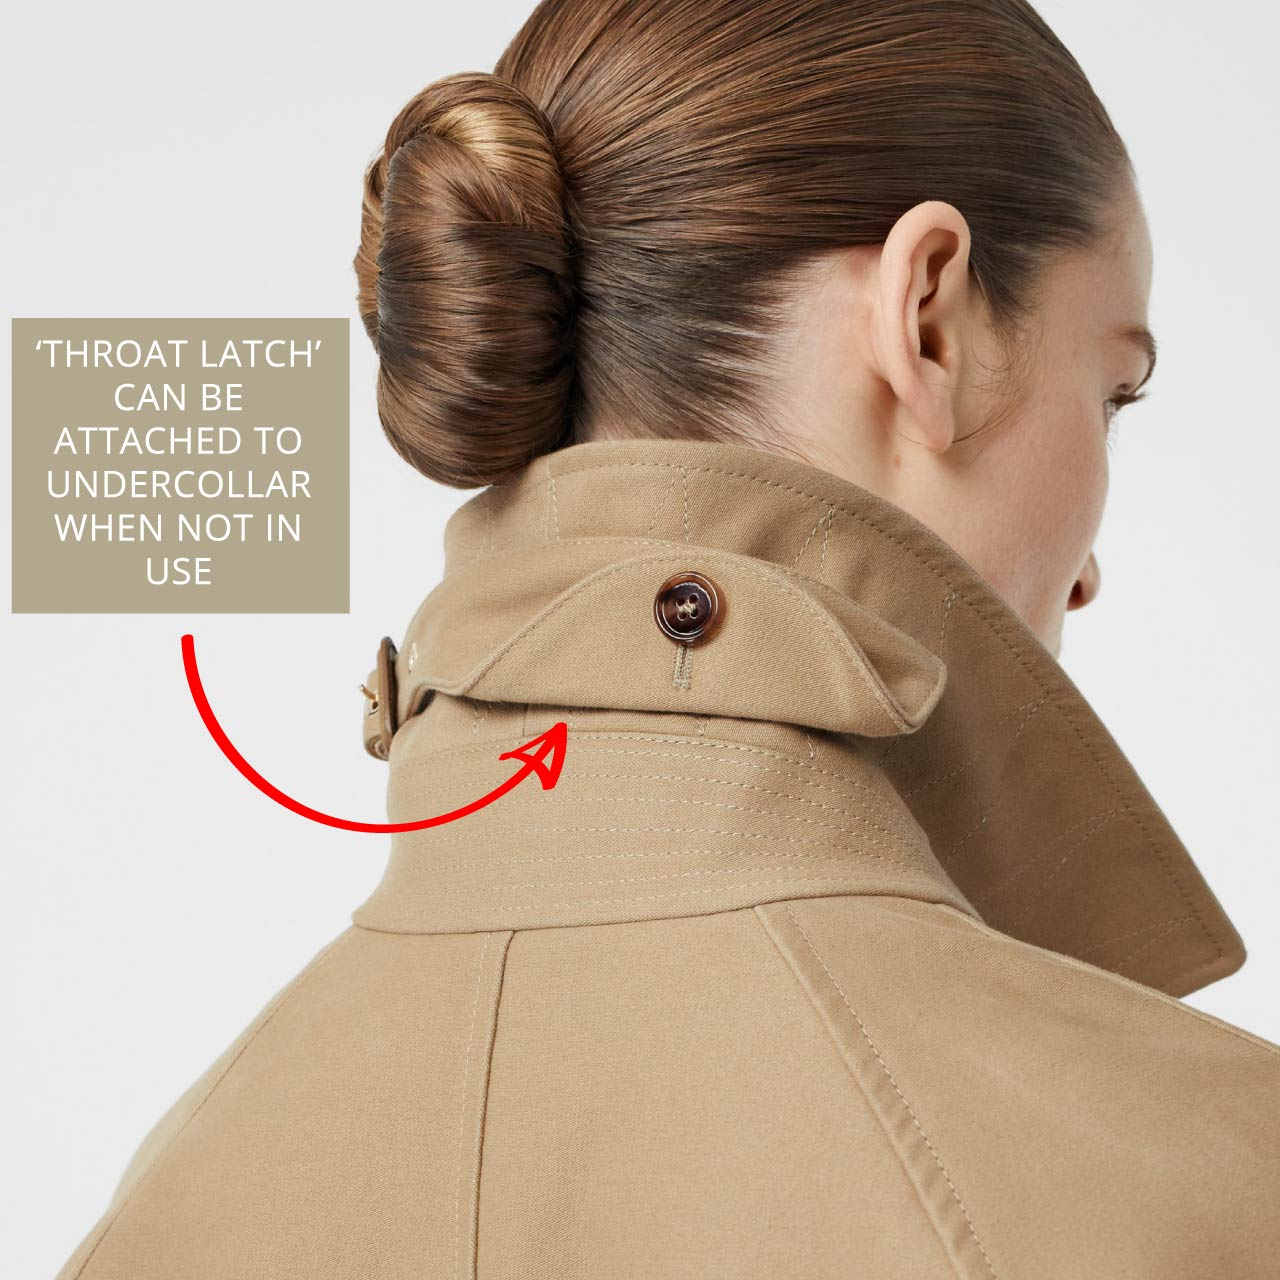 Throat latch is attached to undercollar when not in use. Burberry car coat, The Cutting Class.